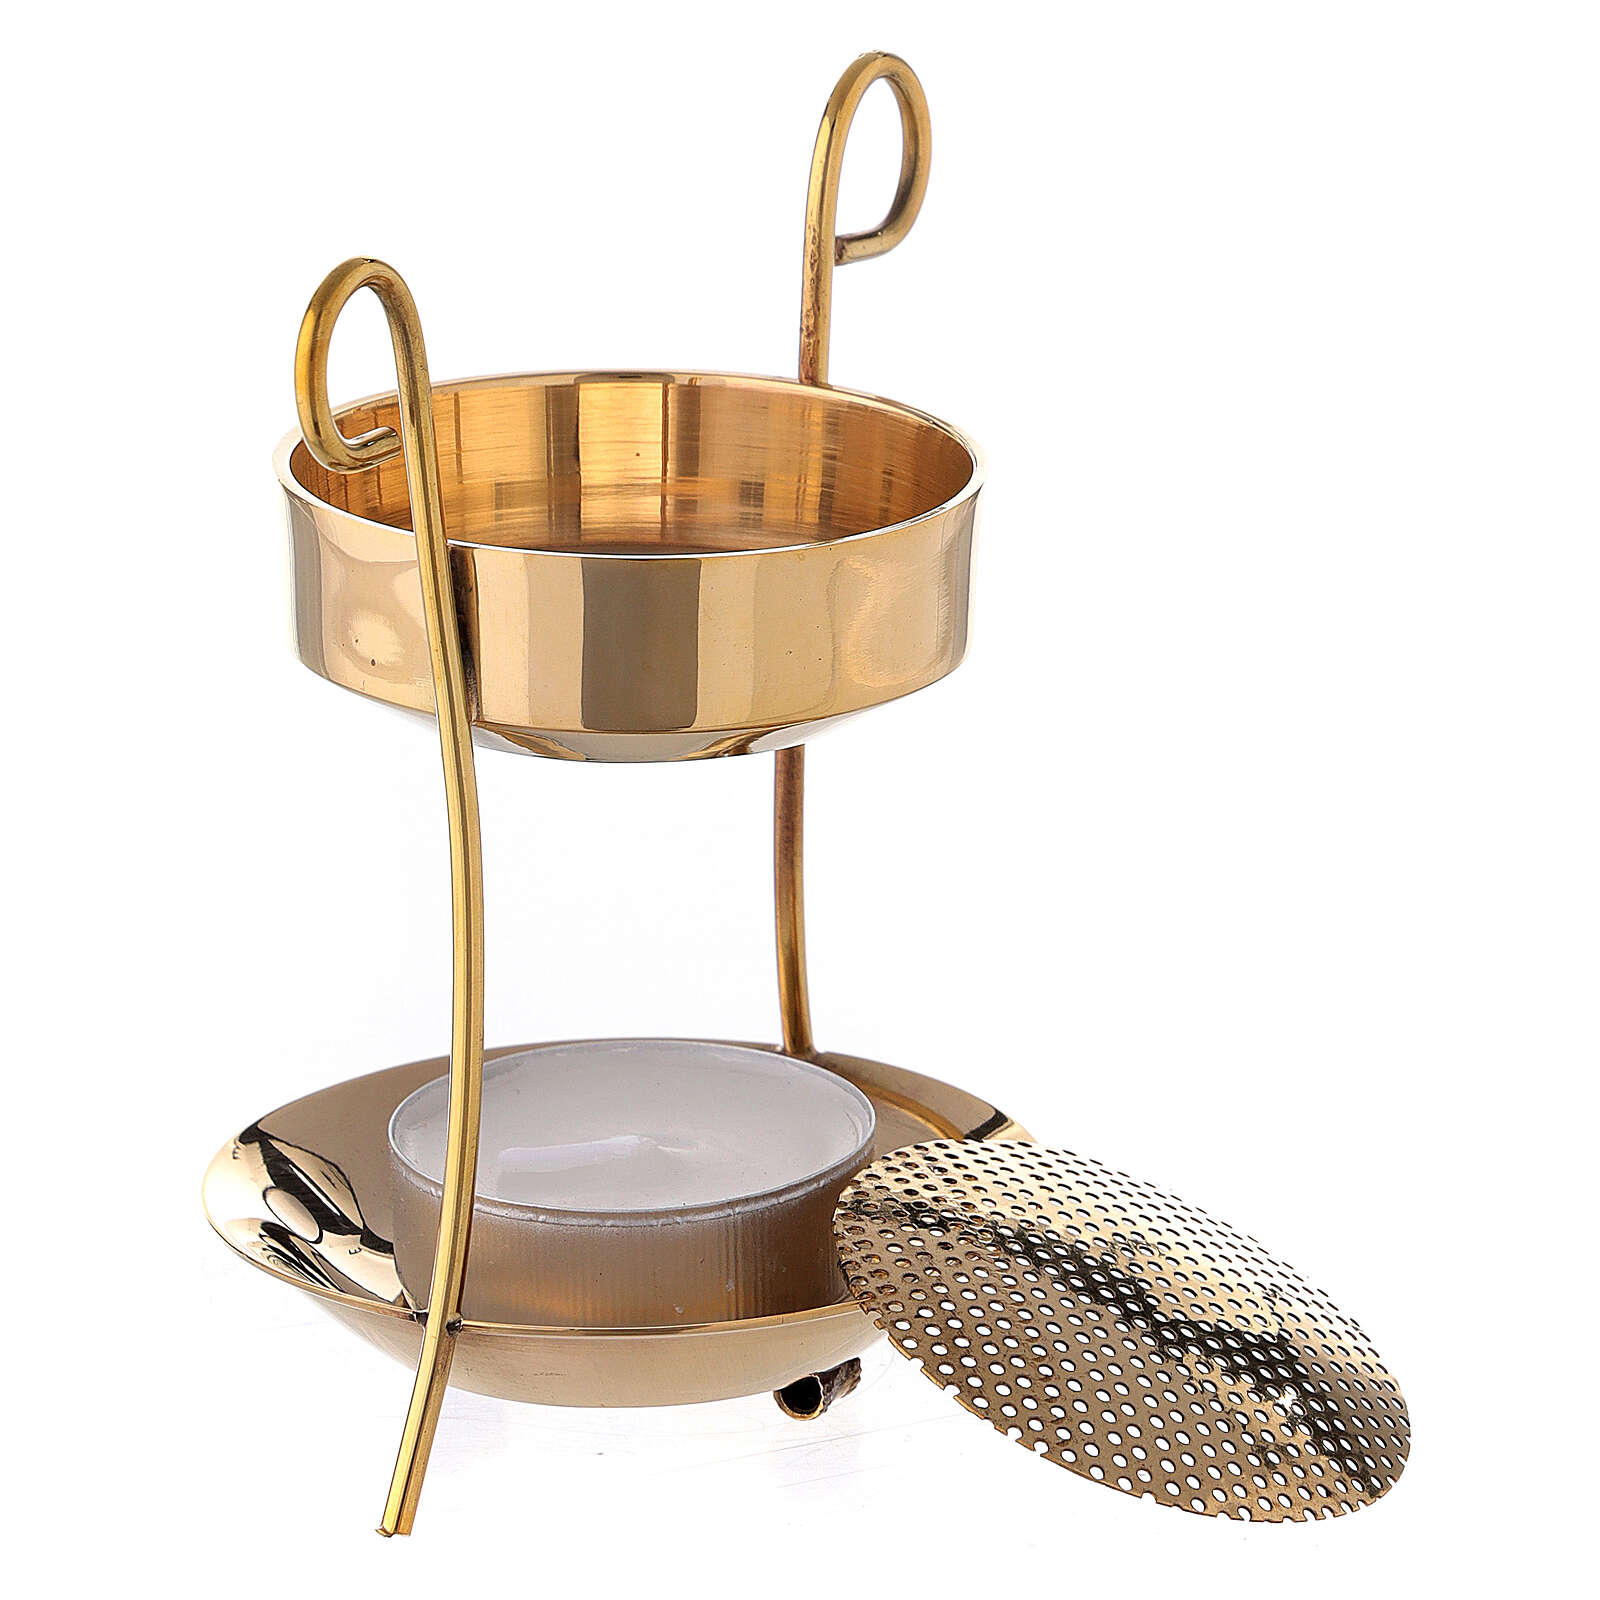 Candle incense burner gold plated brass net 3 1/2 in 3